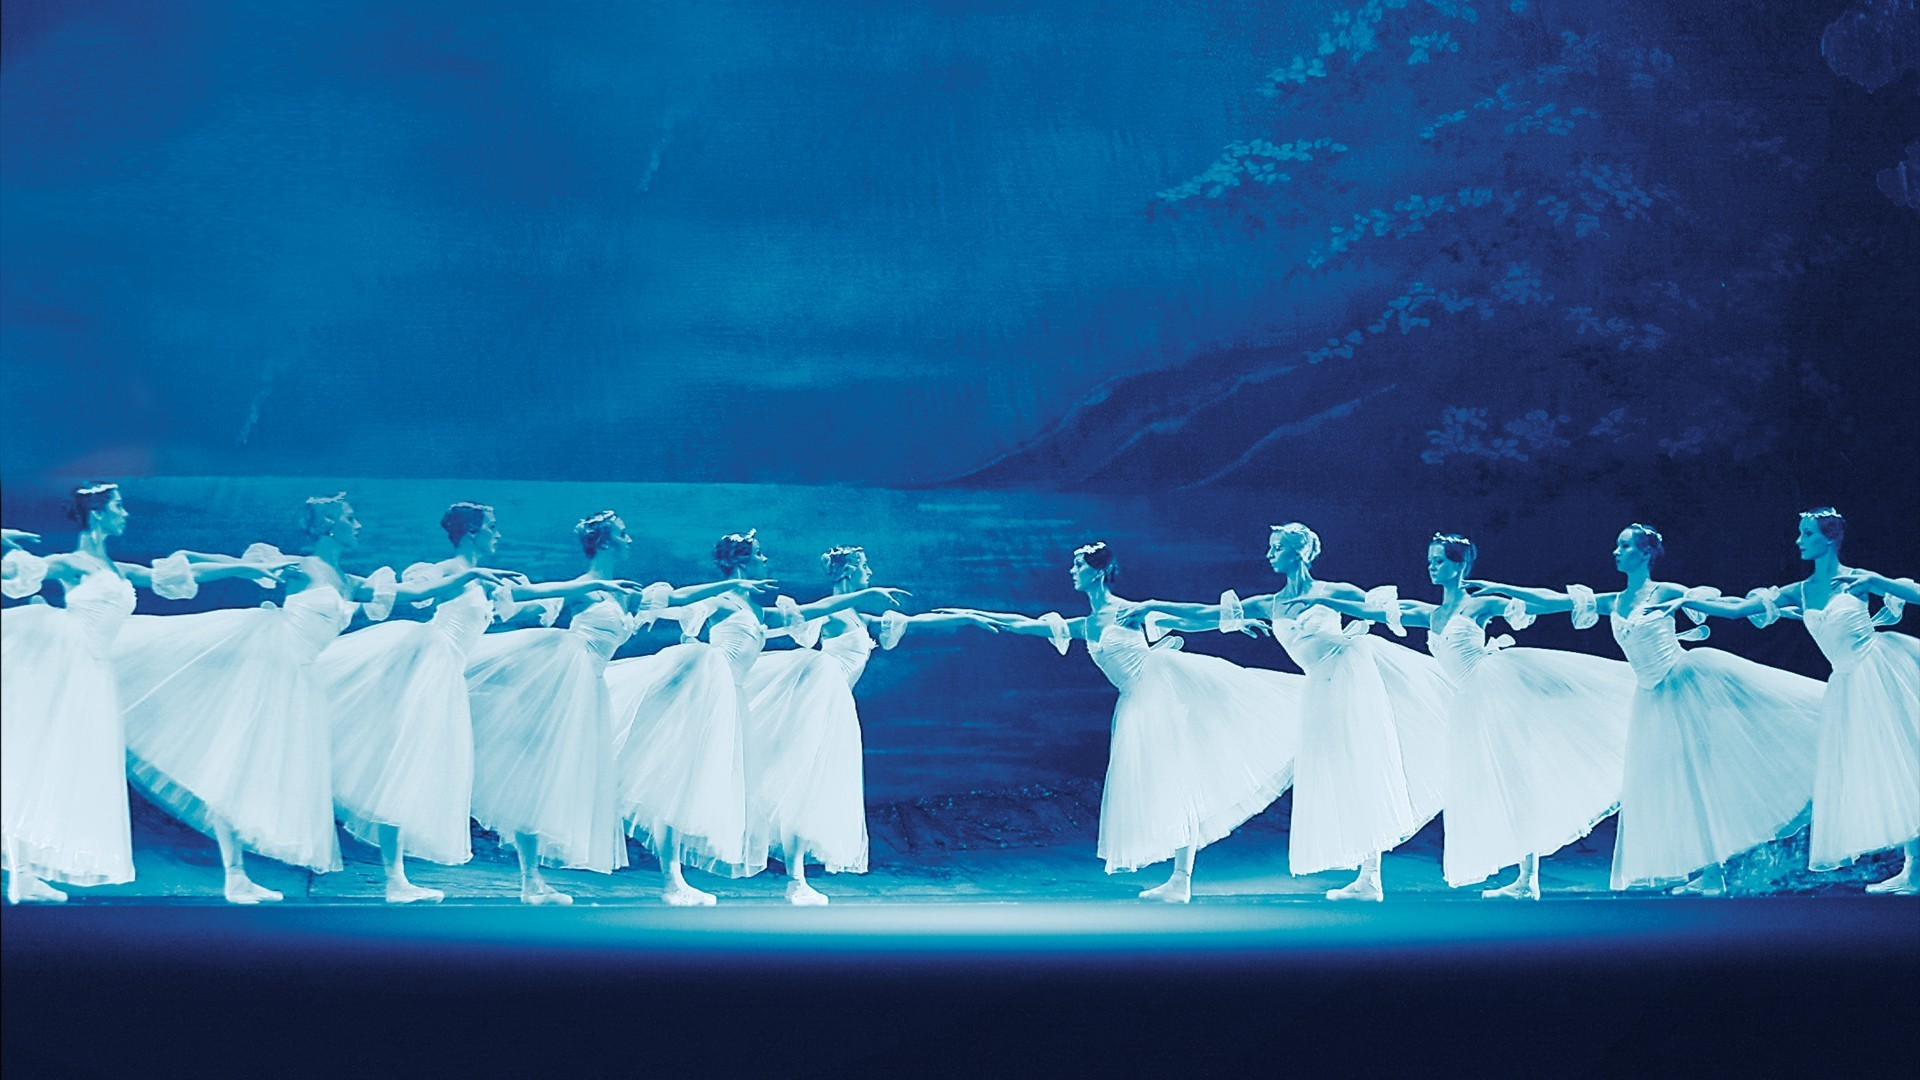 THE VIII INTERNATIONAL FESTIVAL OF THE BALLET. Giselle